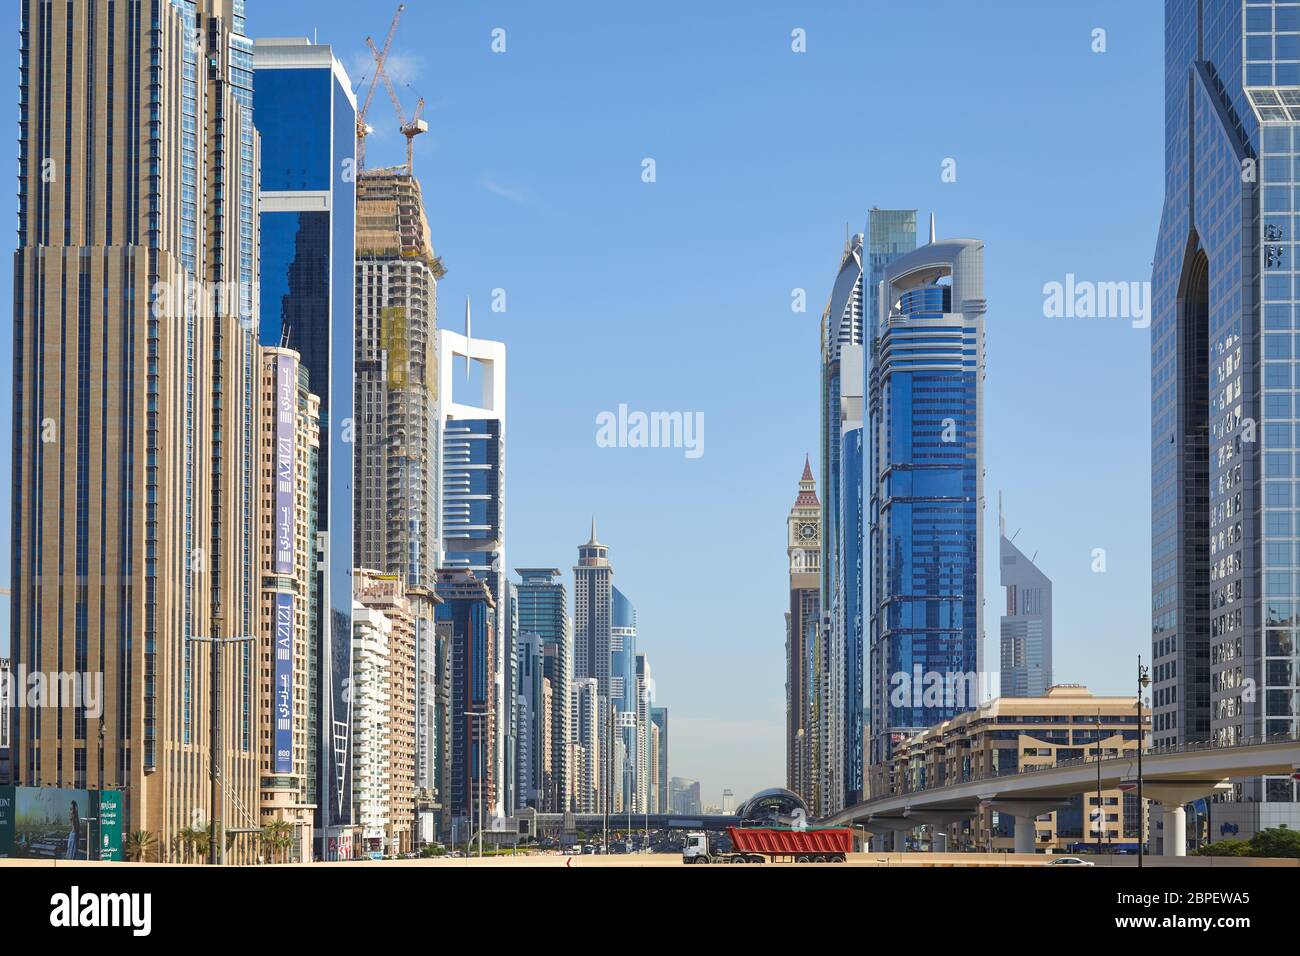 DUBAÏ, ÉMIRATS ARABES UNIS - 23 NOVEMBRE 2019 : Sheikh Zayed Road View with Modern Skyscrapers in a Sunny day, blue Sky Banque D'Images